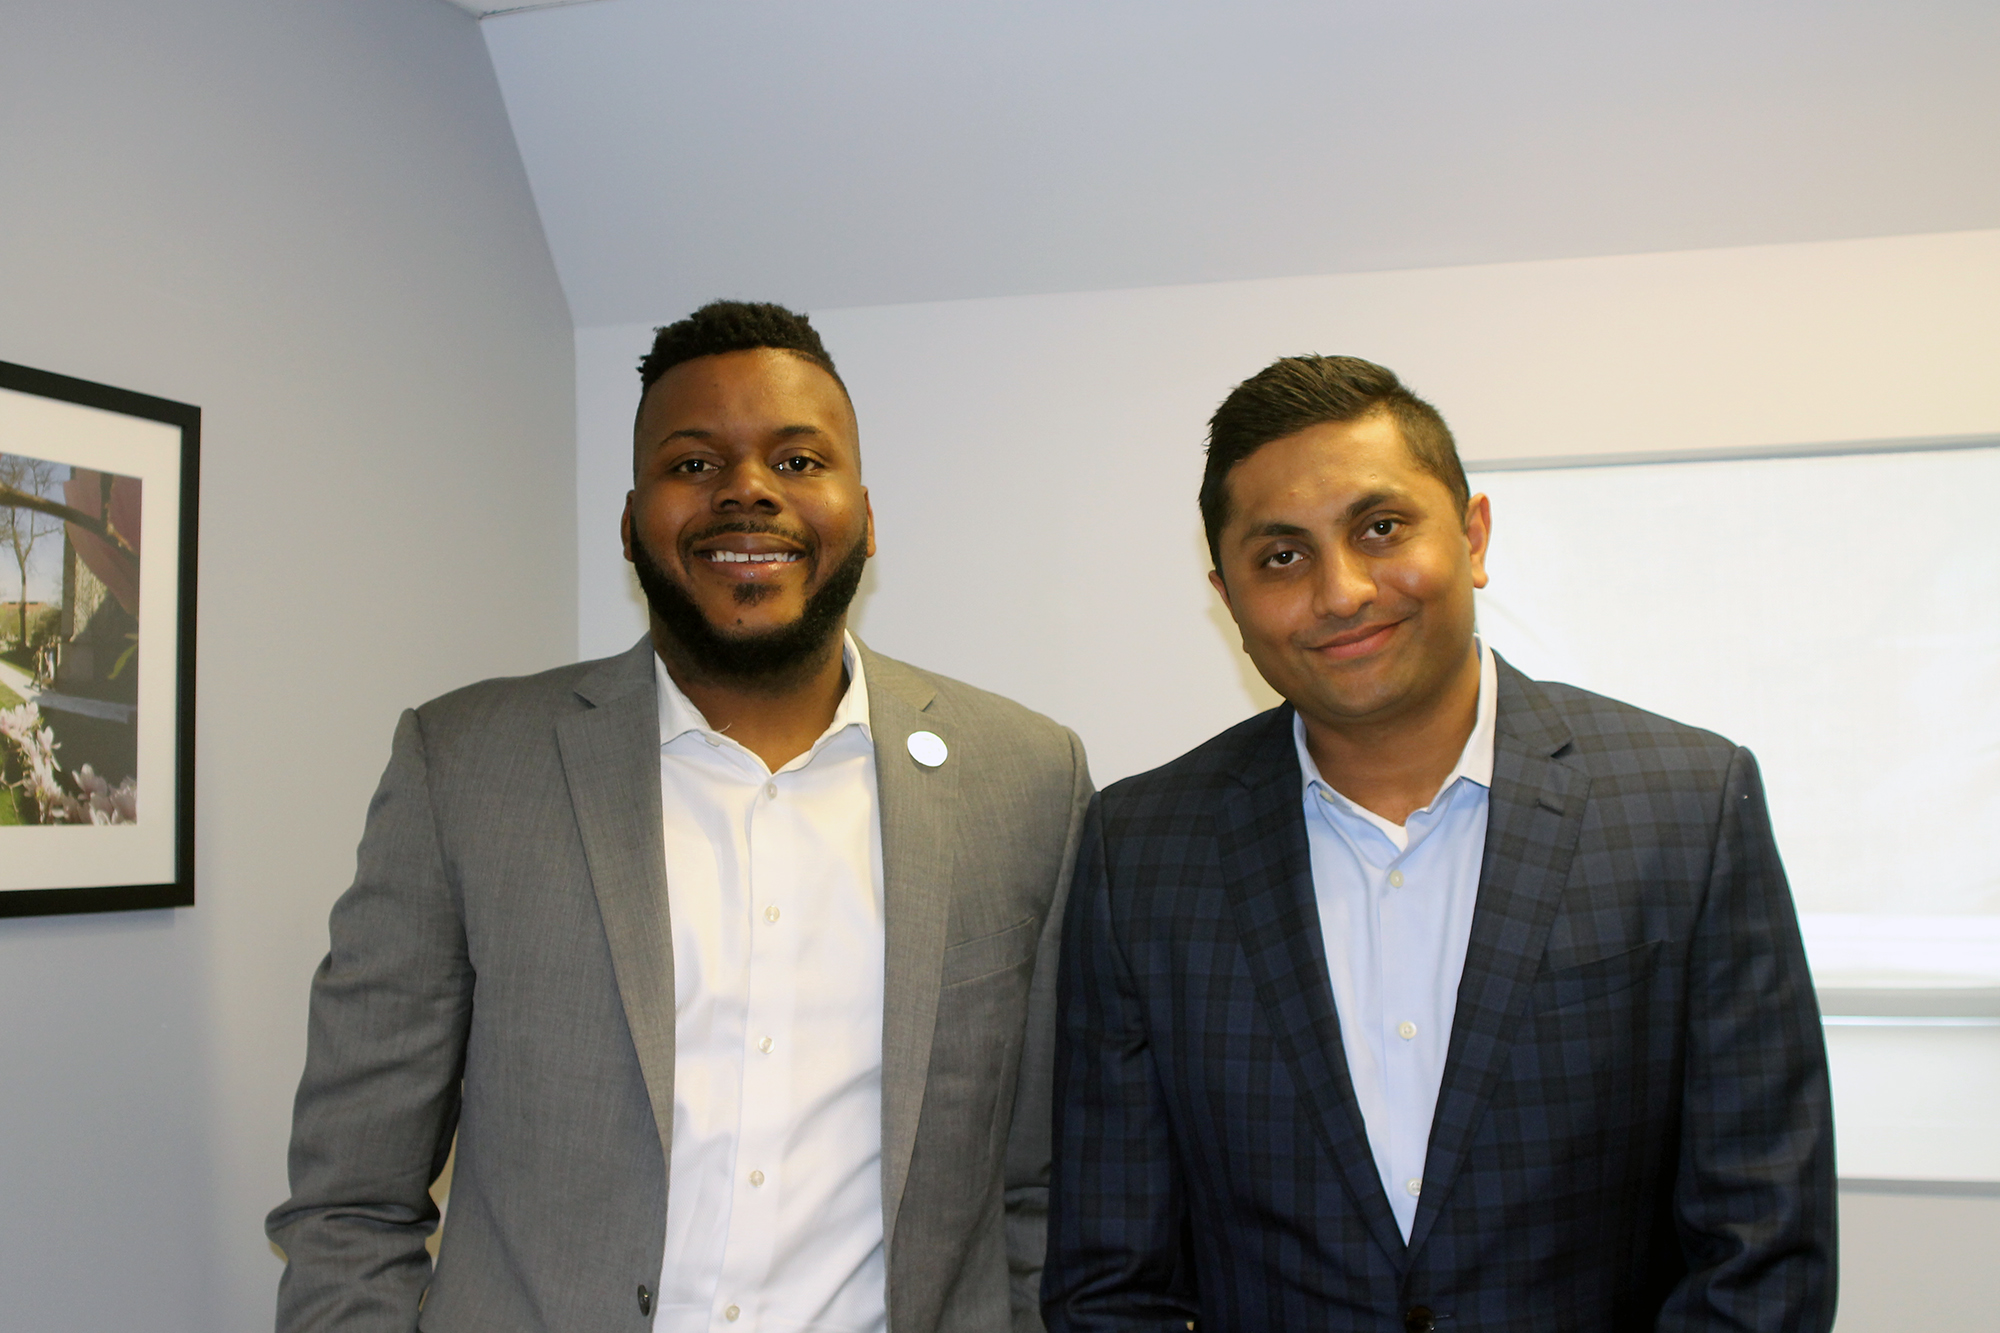 Stockton Mayor Michael Tubbs and 47th Ward Ald. Ameya Pawar at Pawar's office in the University of Chicago Institute of Politics on Nov. 12, 2018. (Arionne Nettles/WBEZ)